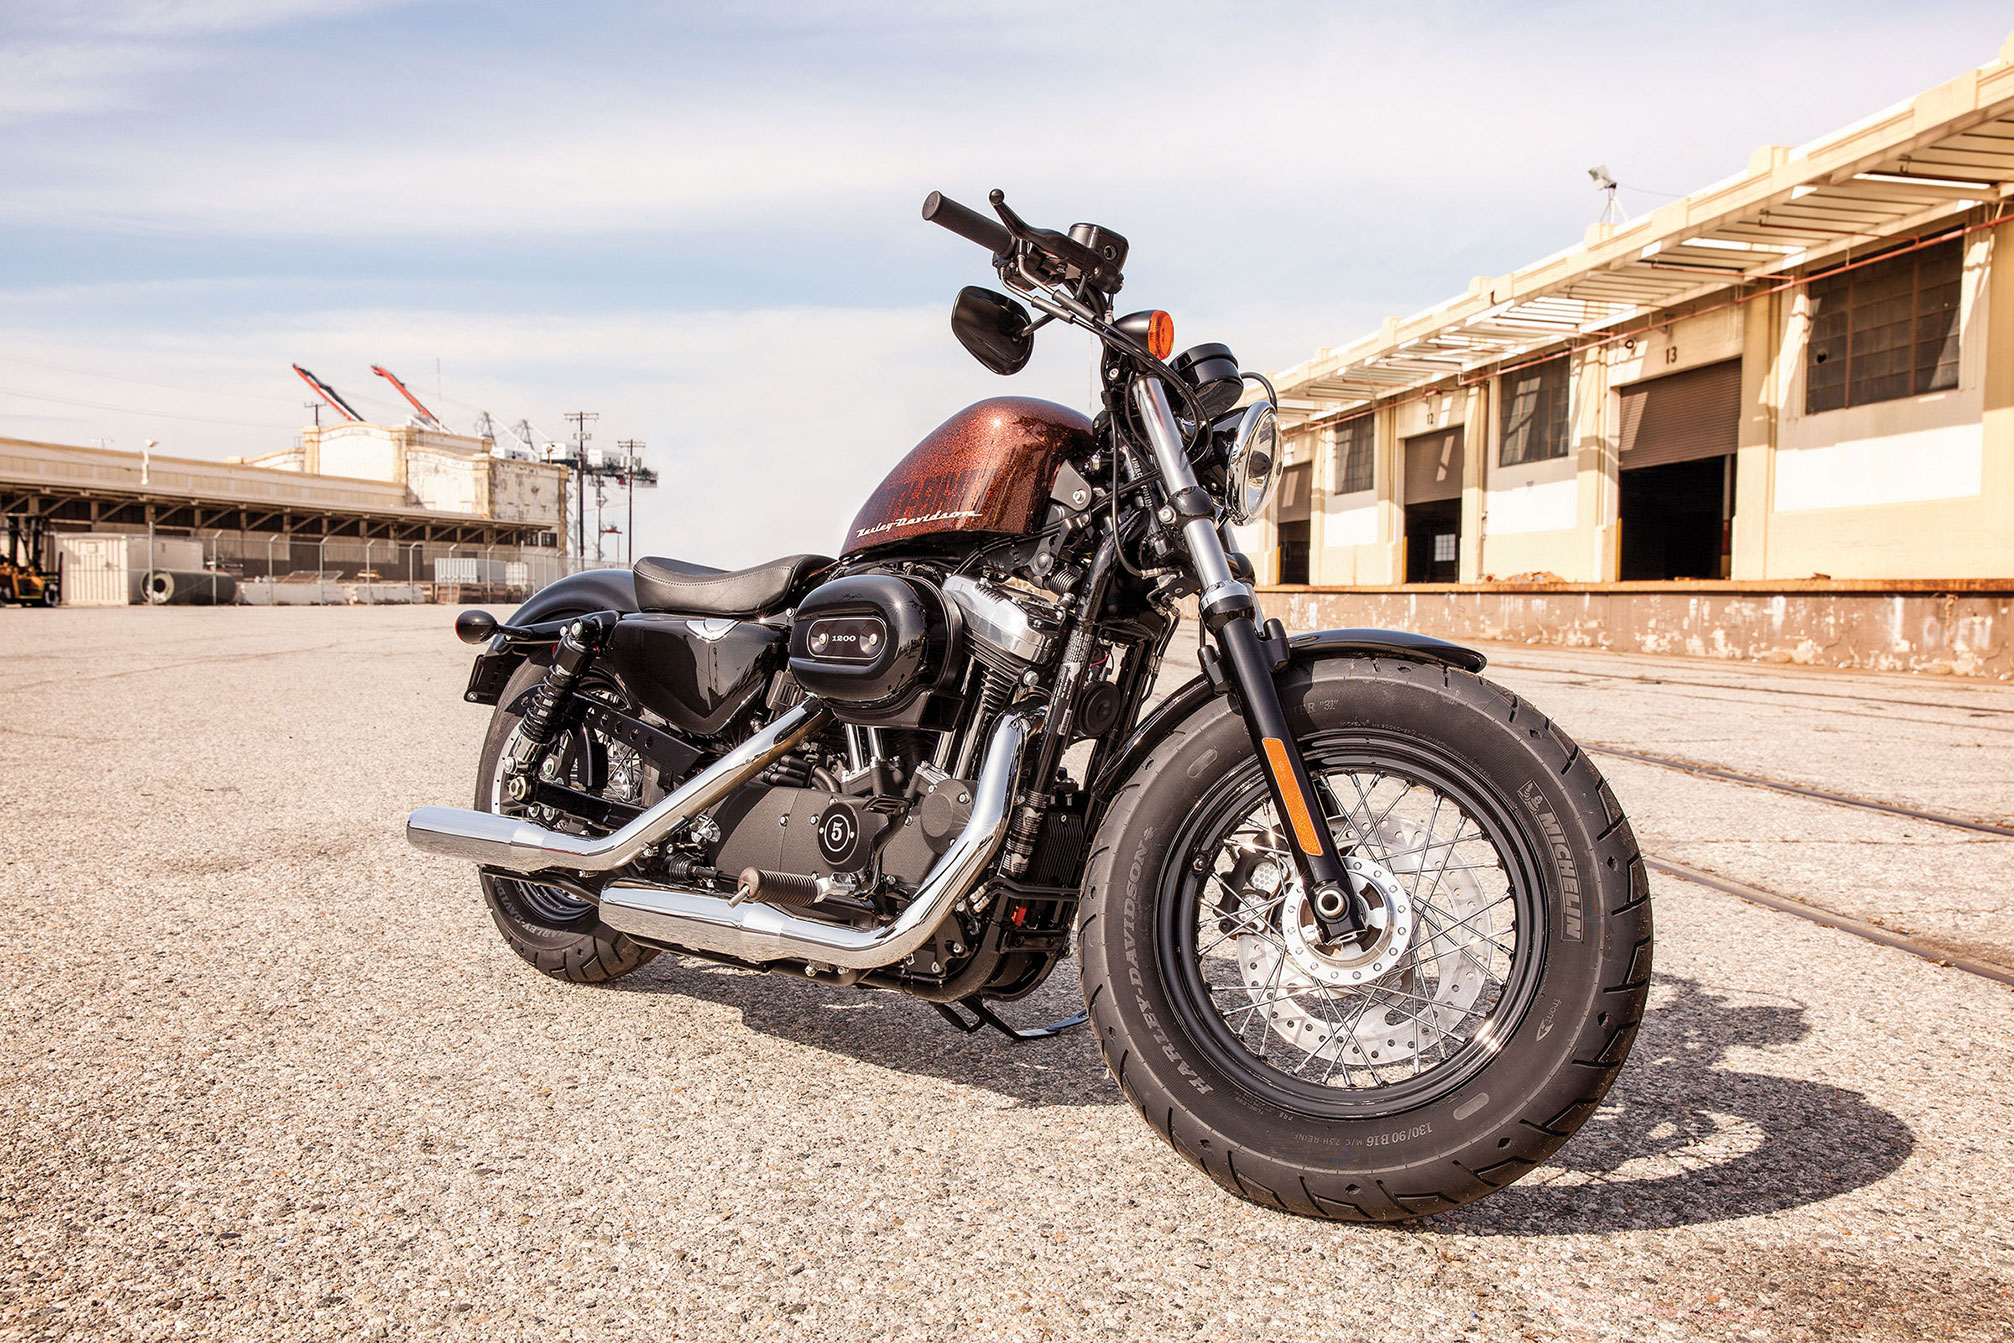 2014 Harley Davidson XL1200X Forty Eight F Wallpaper 2014x1343